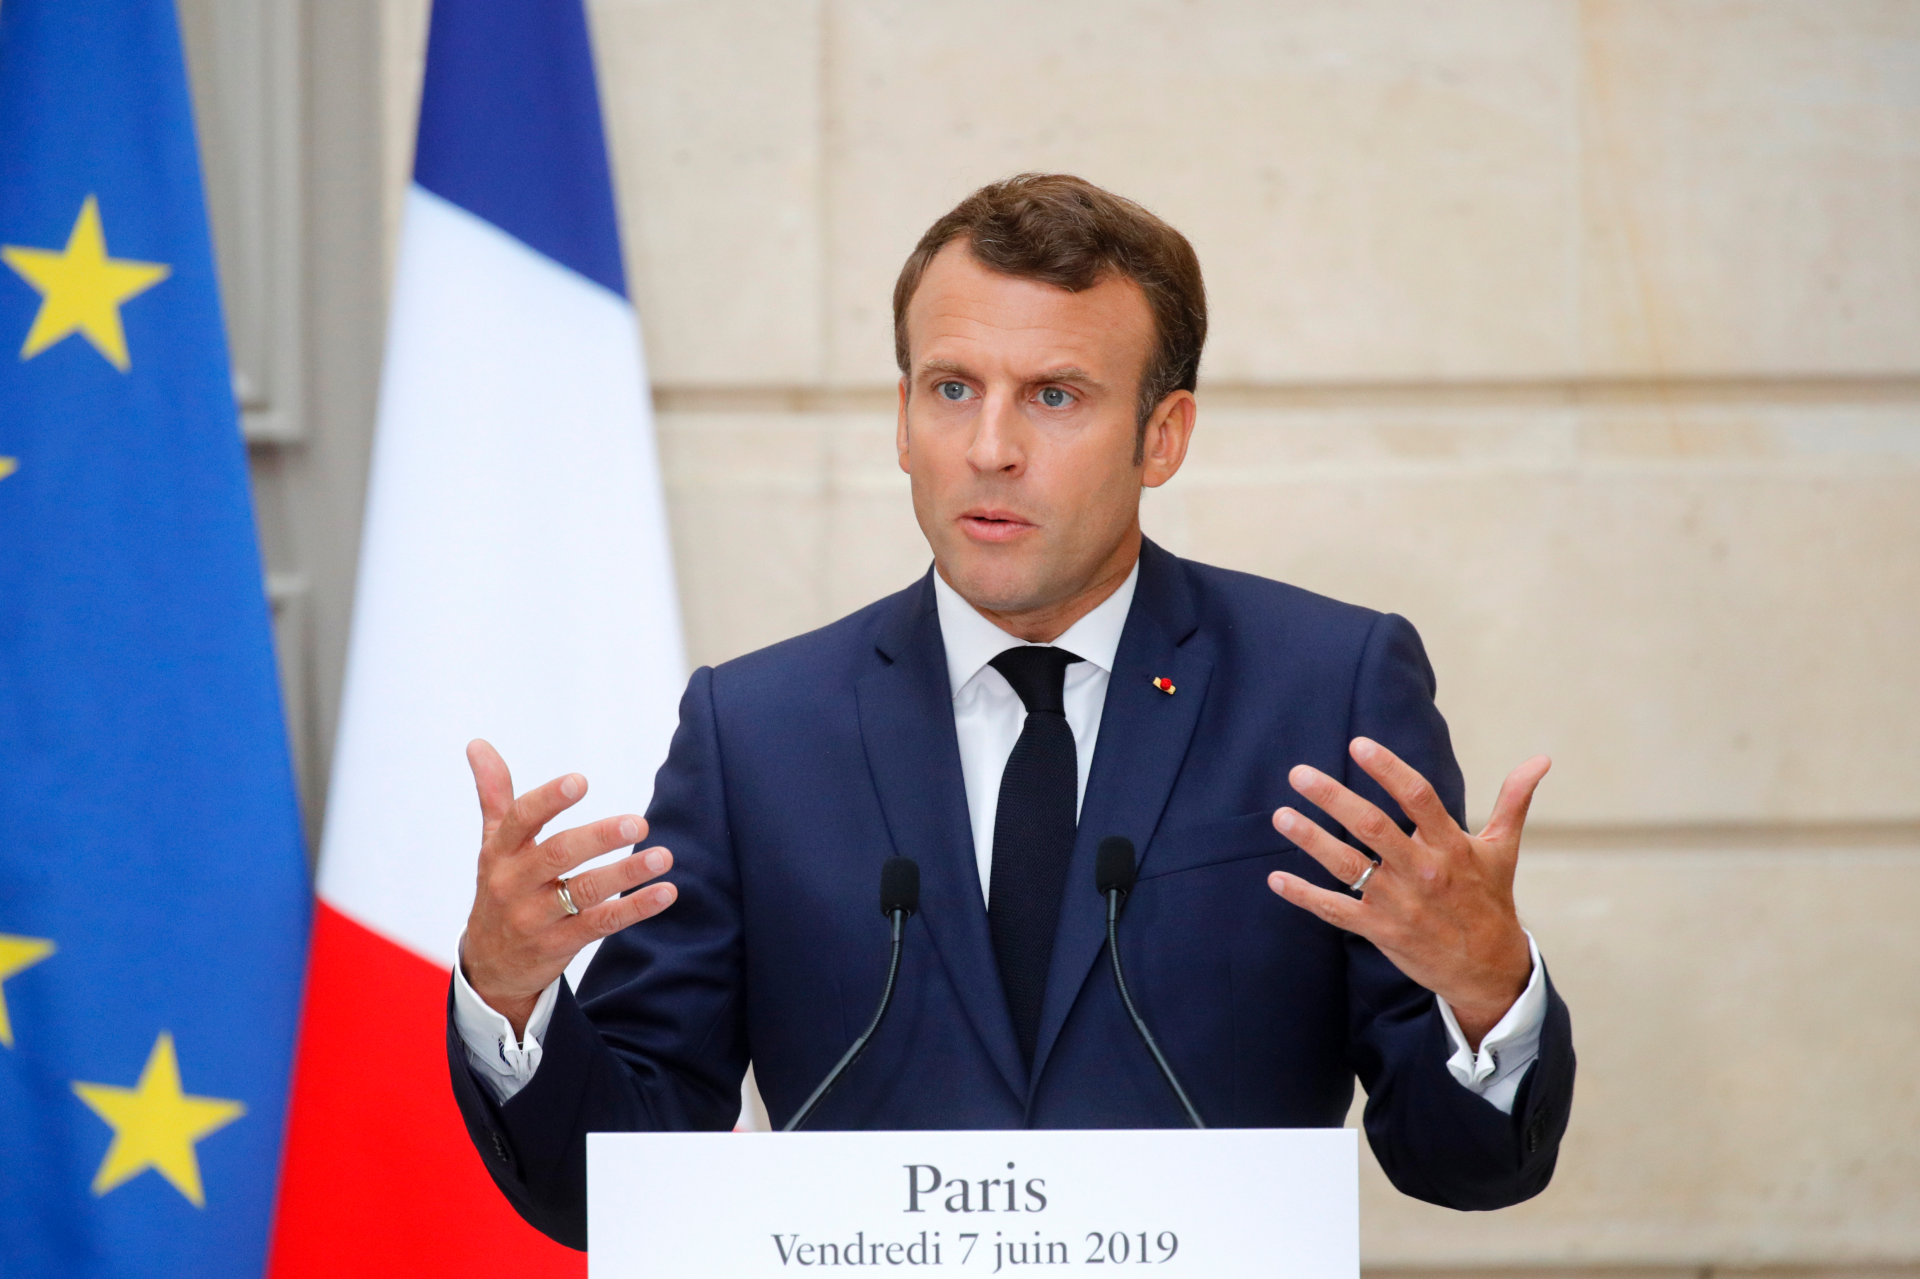 France's Macron to promote climate effort at G-7 summit